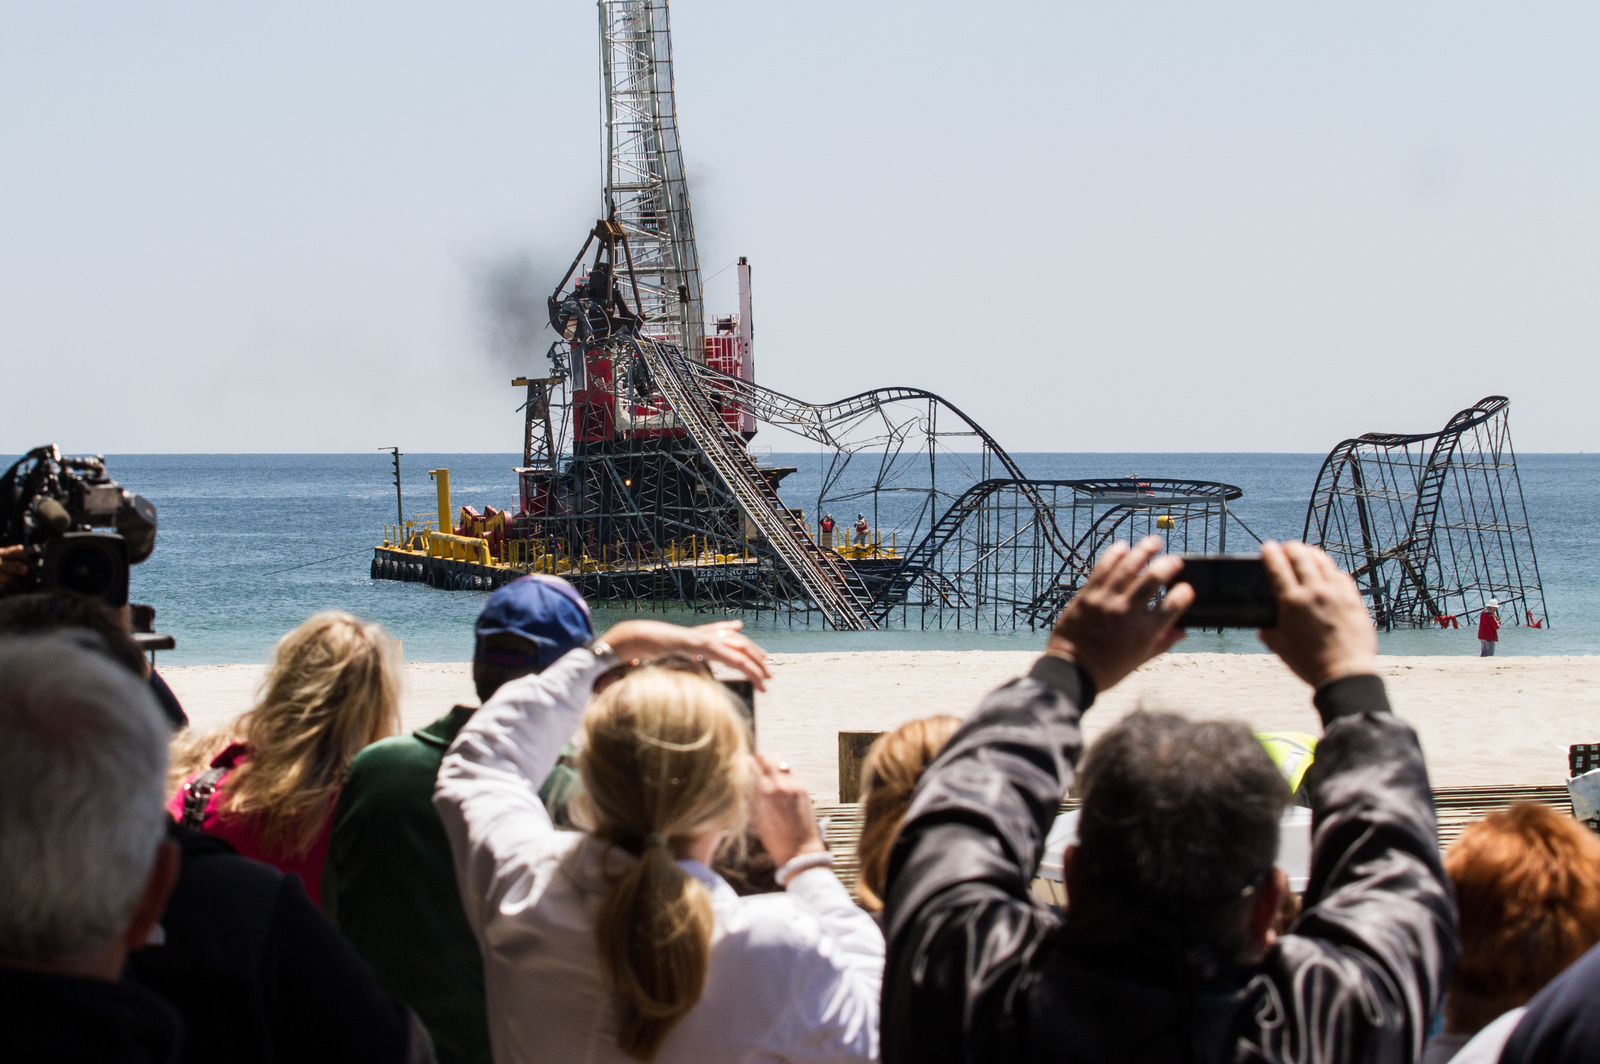 Seaside Heights, N.J., May 14, 2013 -- News media representatives and locals gather to watch the demolition of Casino Pier's Jet Star roller coaster that collapsed into the ocean during Hurricane Sandy last fall. The demolition of the roller coaster, once an iconic symbol of Sandy's fury, now becomes a symbol of recovery and new beginnings for Seaside Heights. Rosanna Arias/FEMA